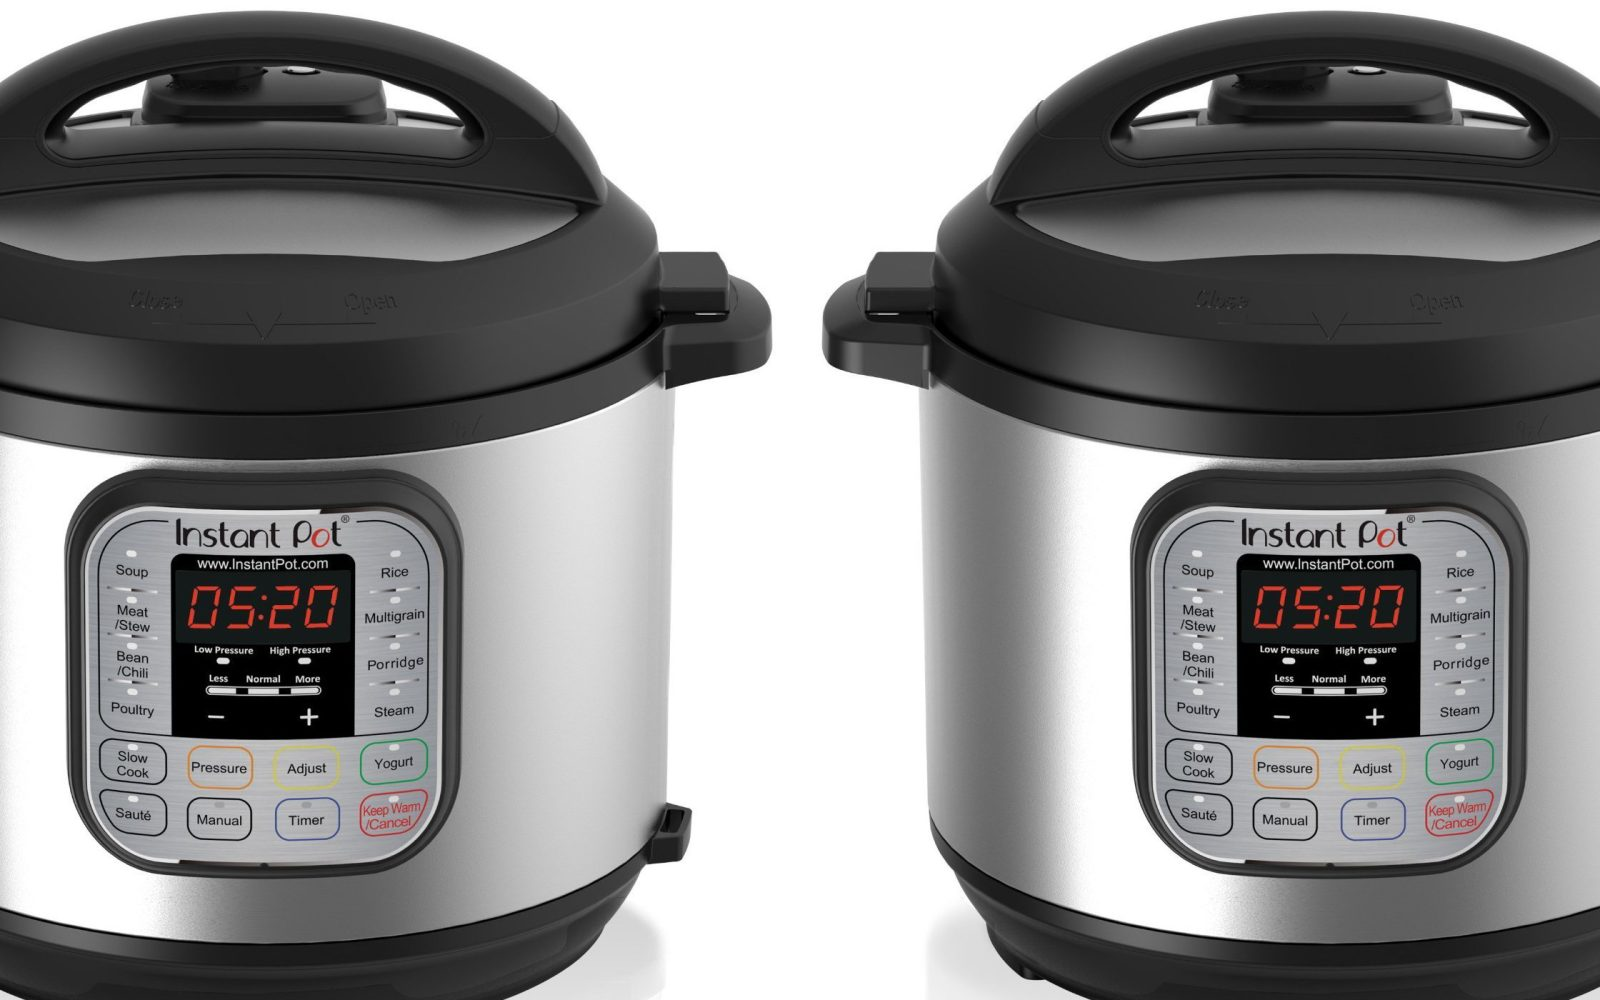 The best-selling Instant Pot Multi-Function Pressure